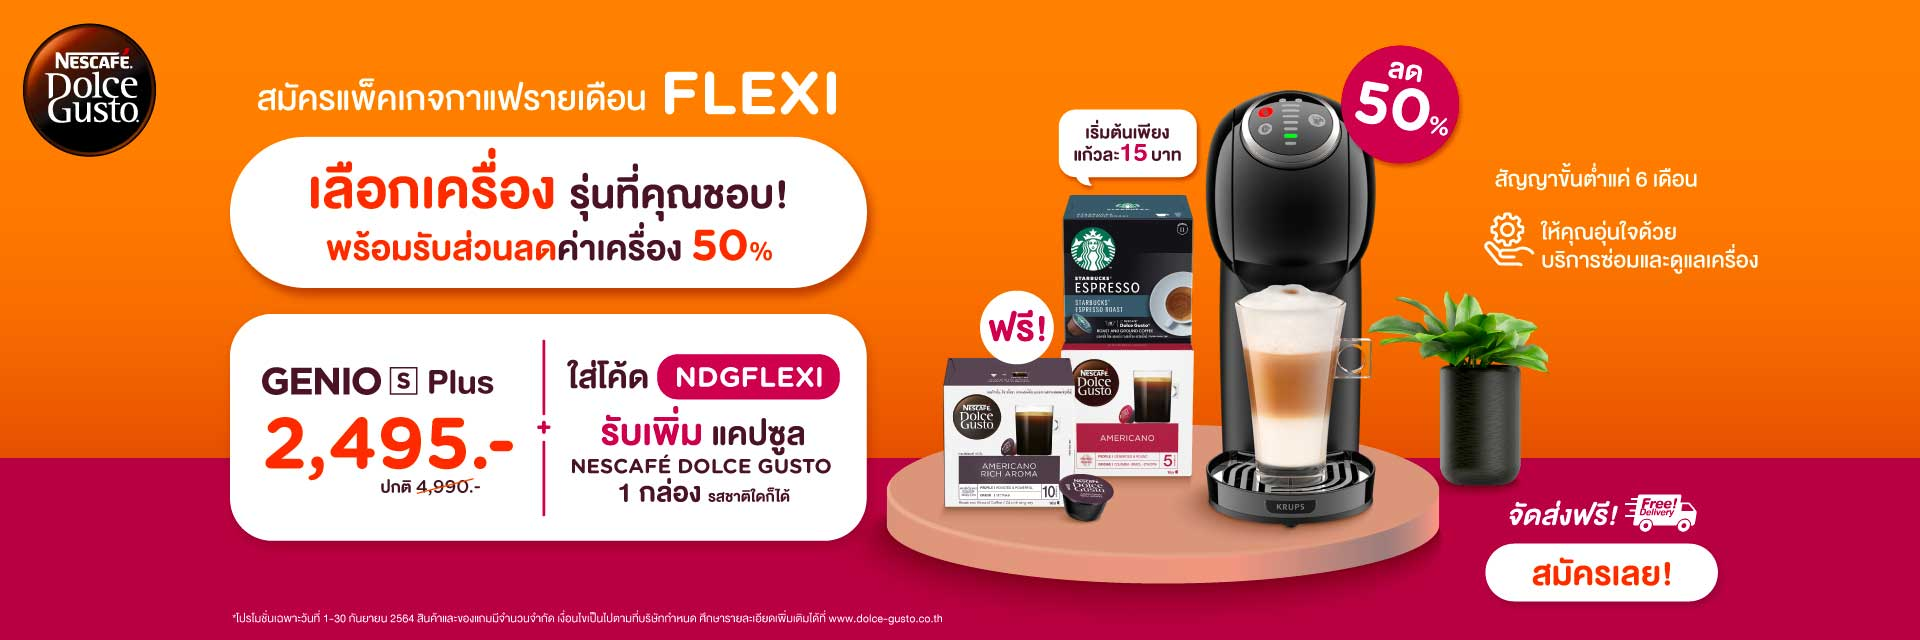 Flexi Package